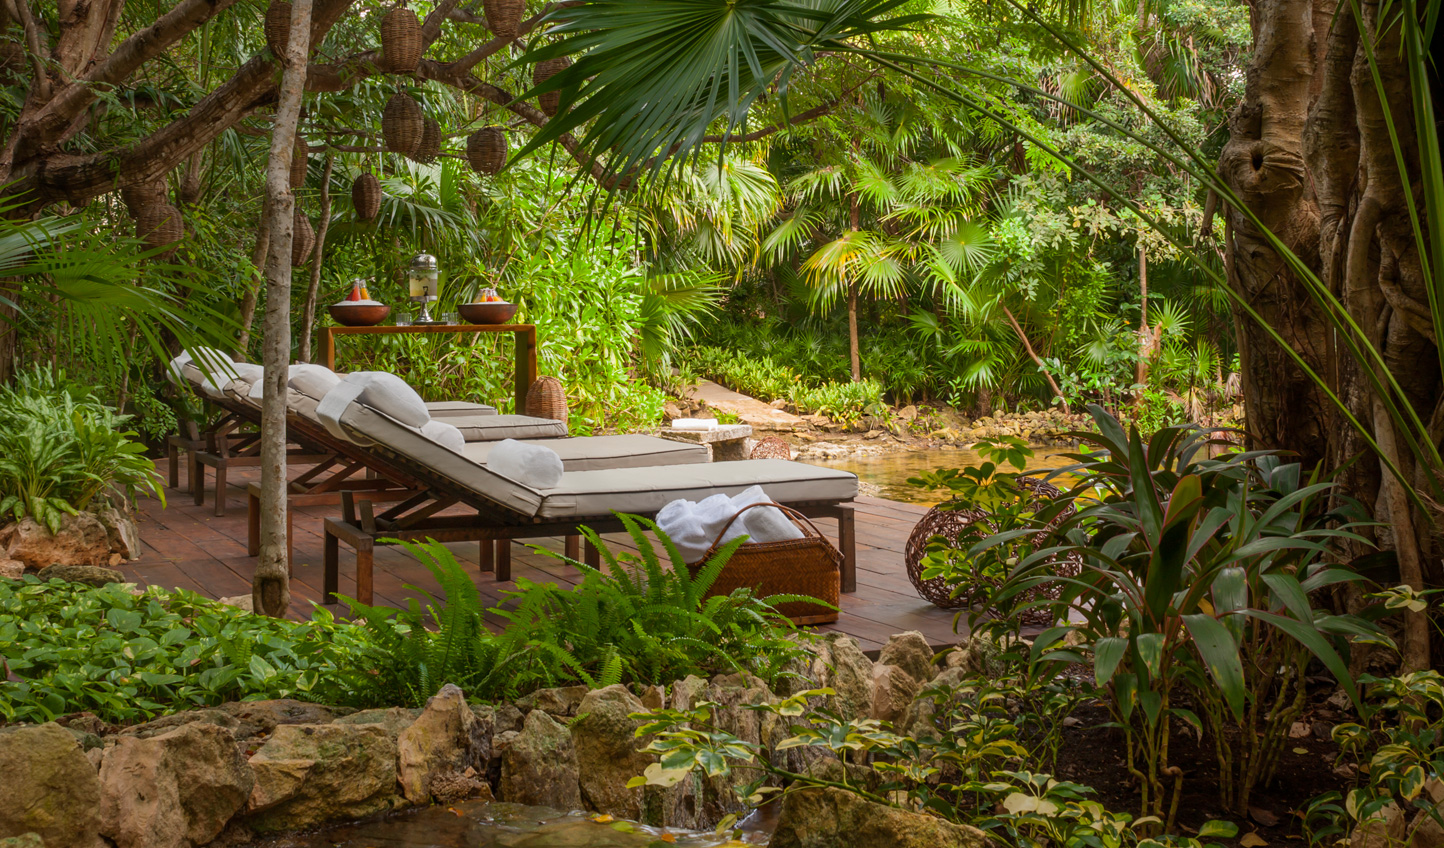 Relax in the peace of the cenote